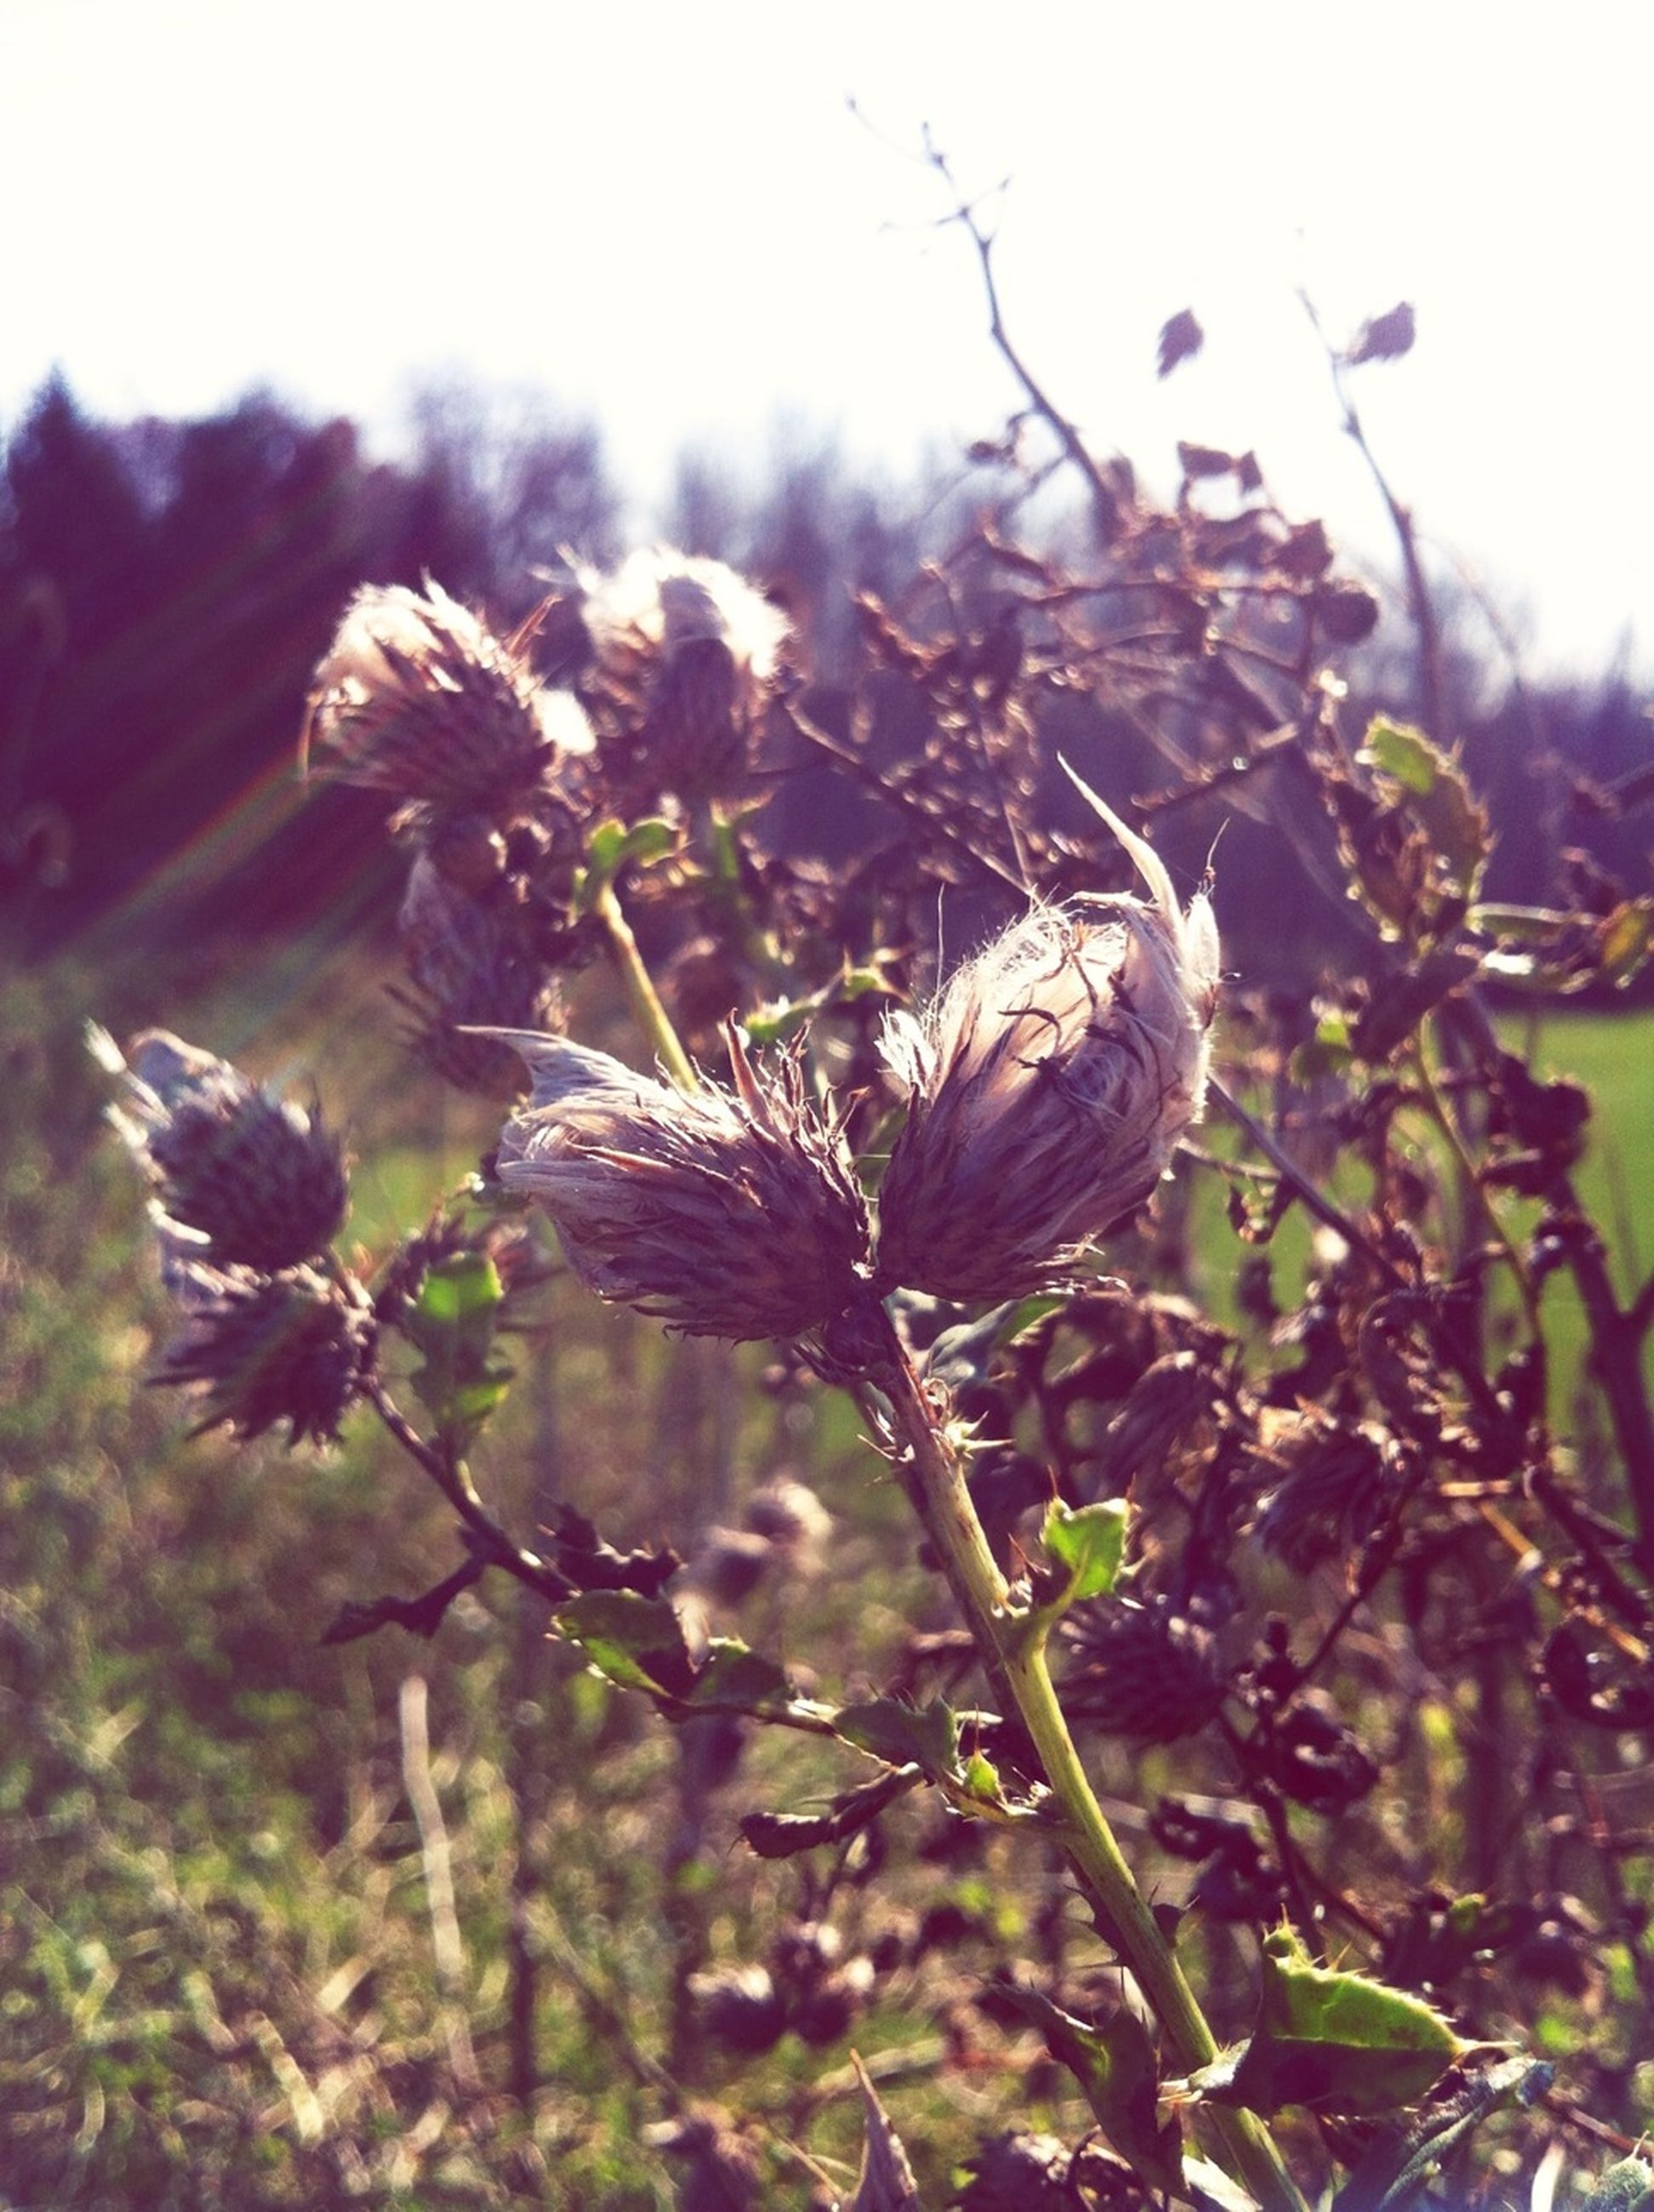 growth, flower, freshness, plant, focus on foreground, close-up, nature, fragility, beauty in nature, bud, stem, flower head, blooming, field, day, sky, growing, outdoors, petal, beginnings